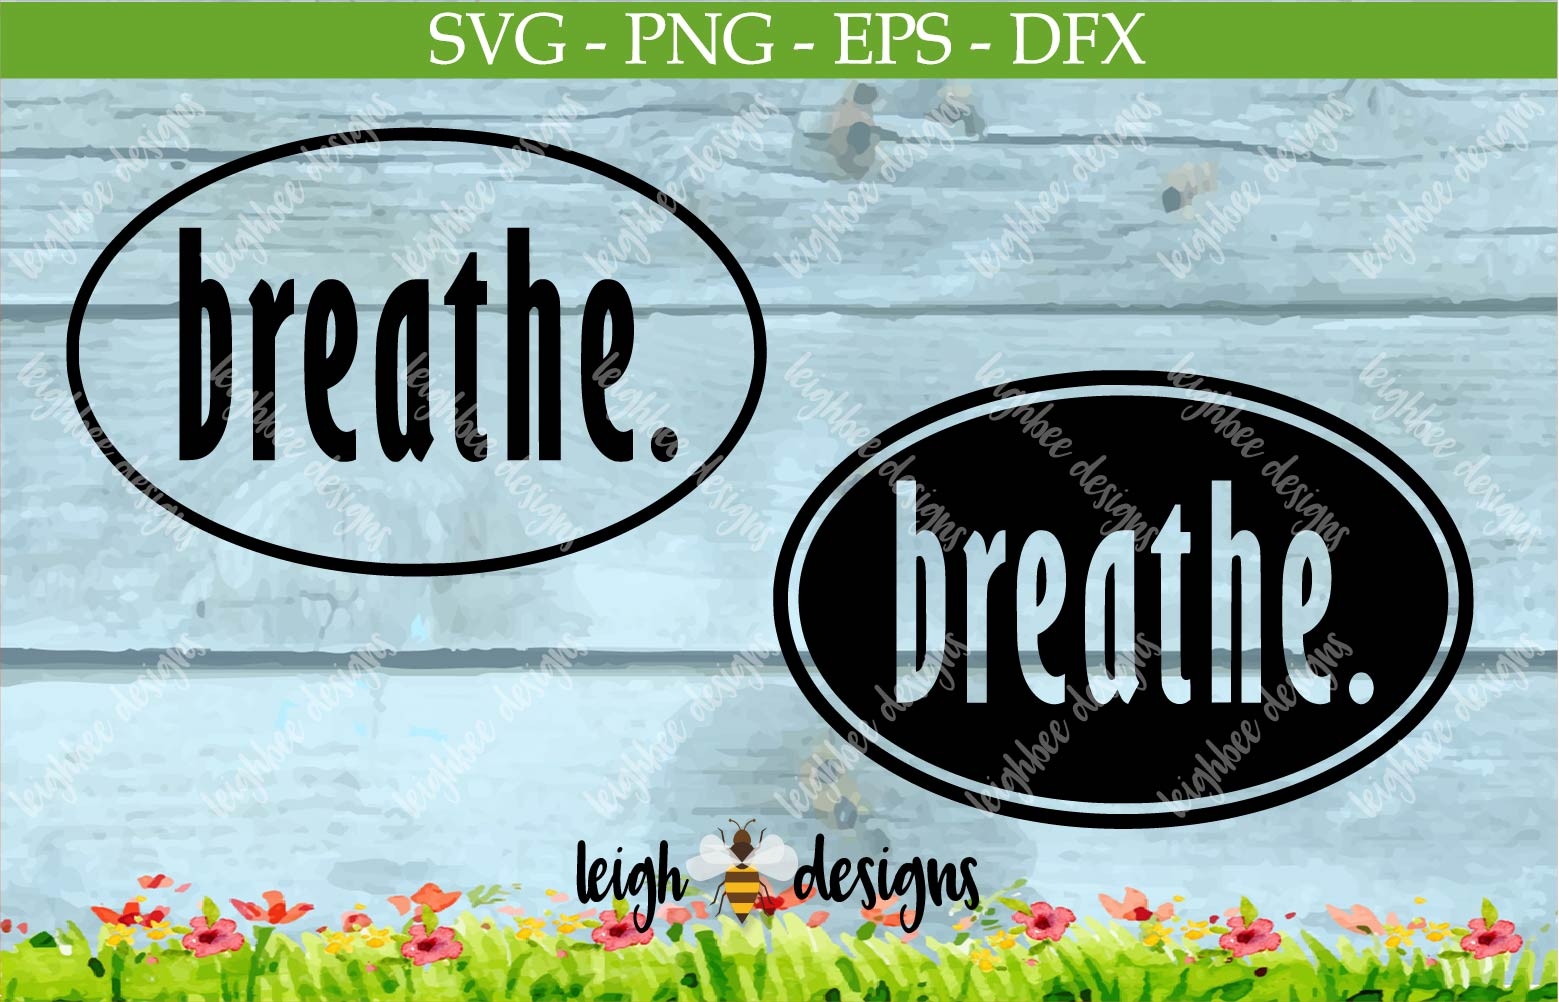 Breath Oval SVG/DFX/PNG/EPS File  example image 1